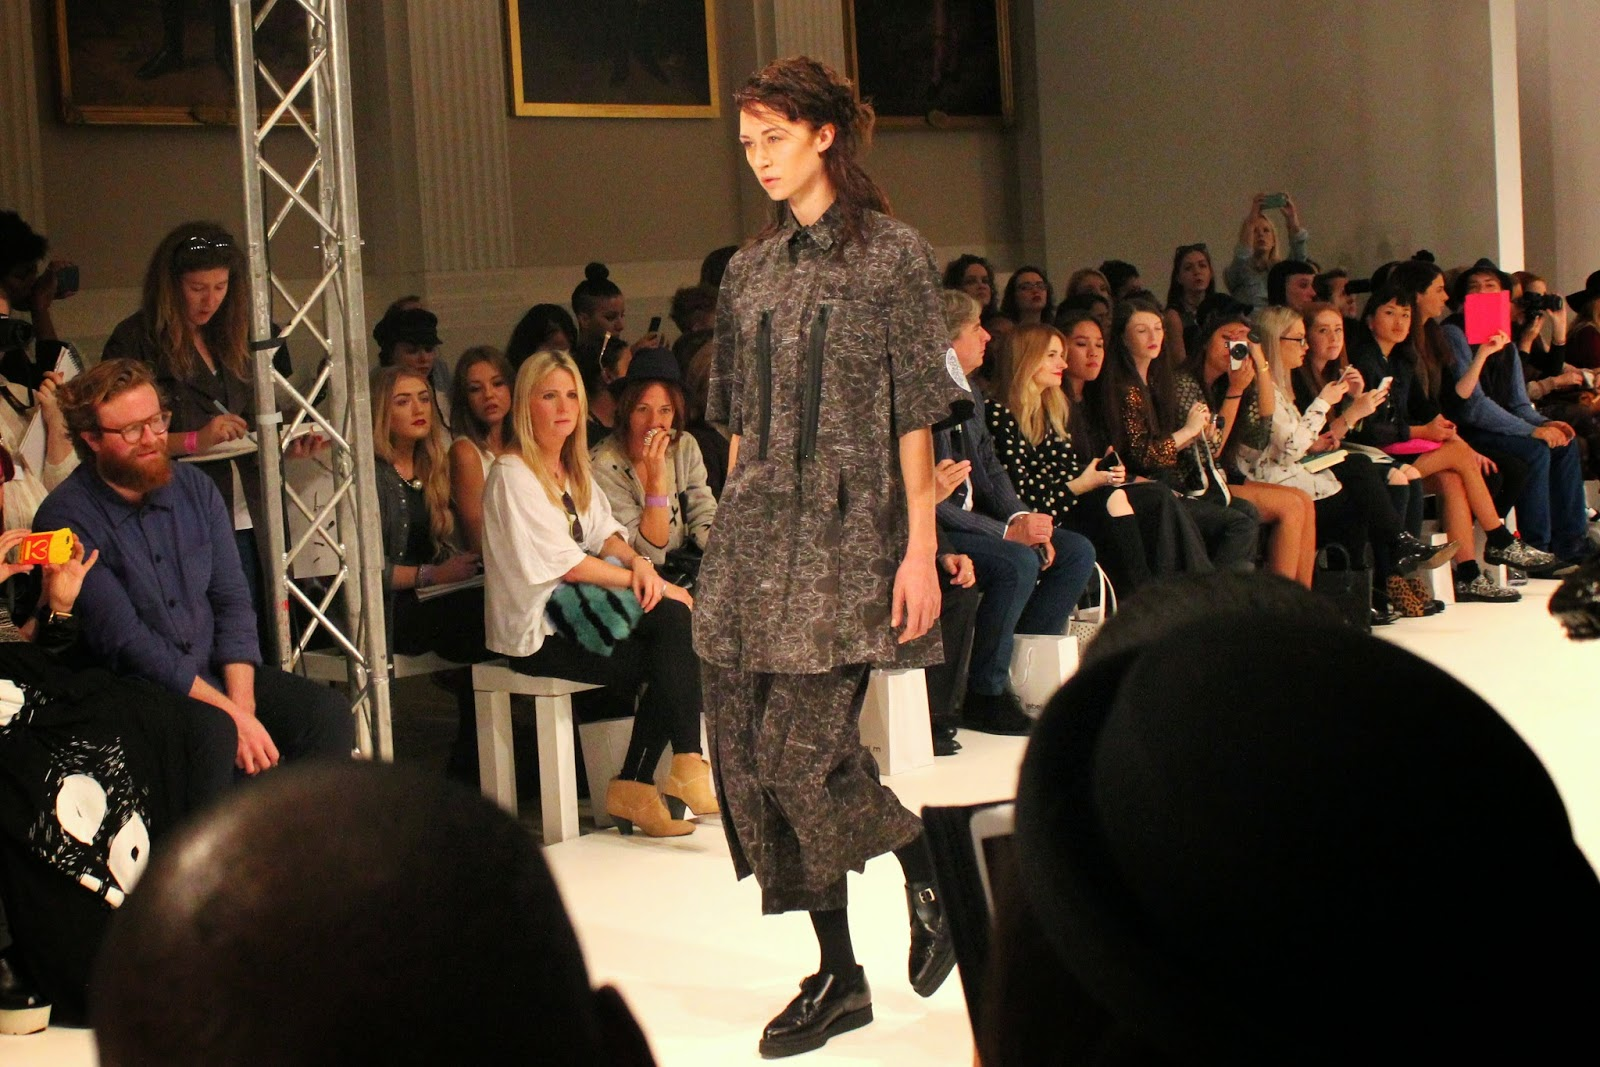 london-fashion-week-2014-lfw-spring-summer-2015-blogger-fashion-Dioralop-catwalk-models-freemasons hall-fashion-scout-shirt-trousers-shoes